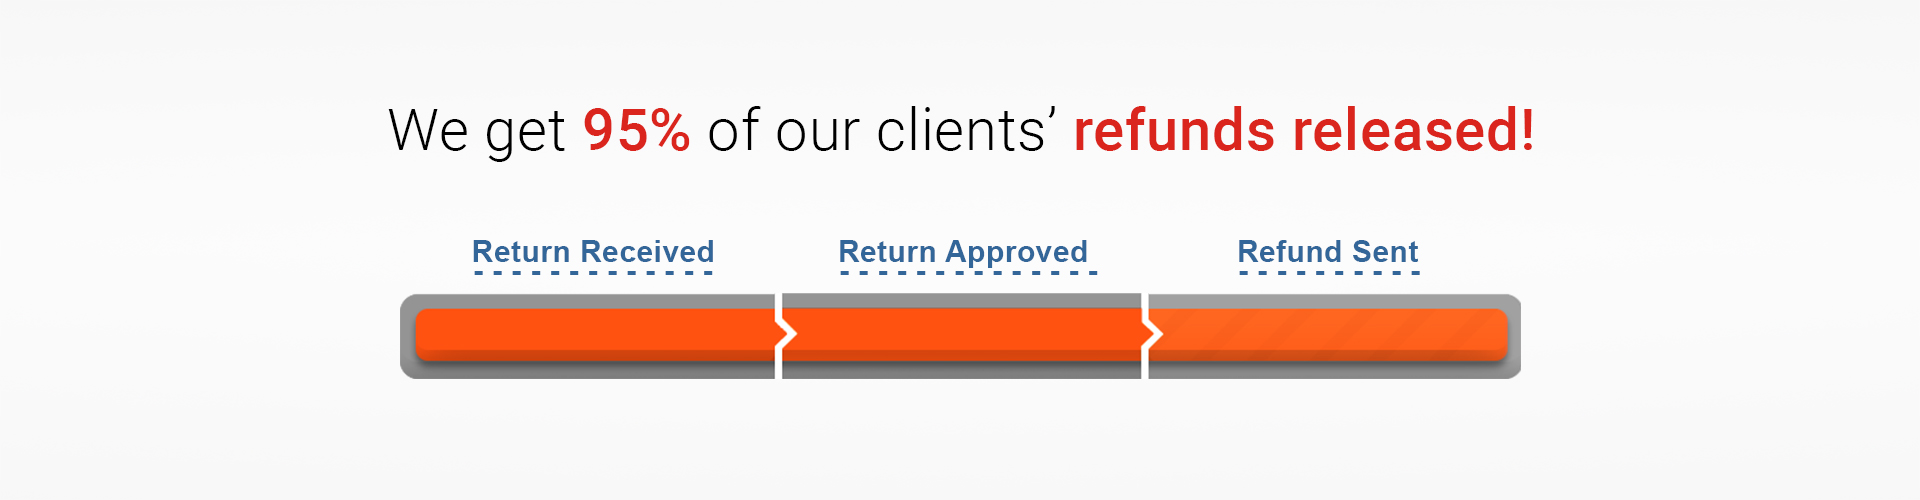 We get 95%  of our client's refunds released!